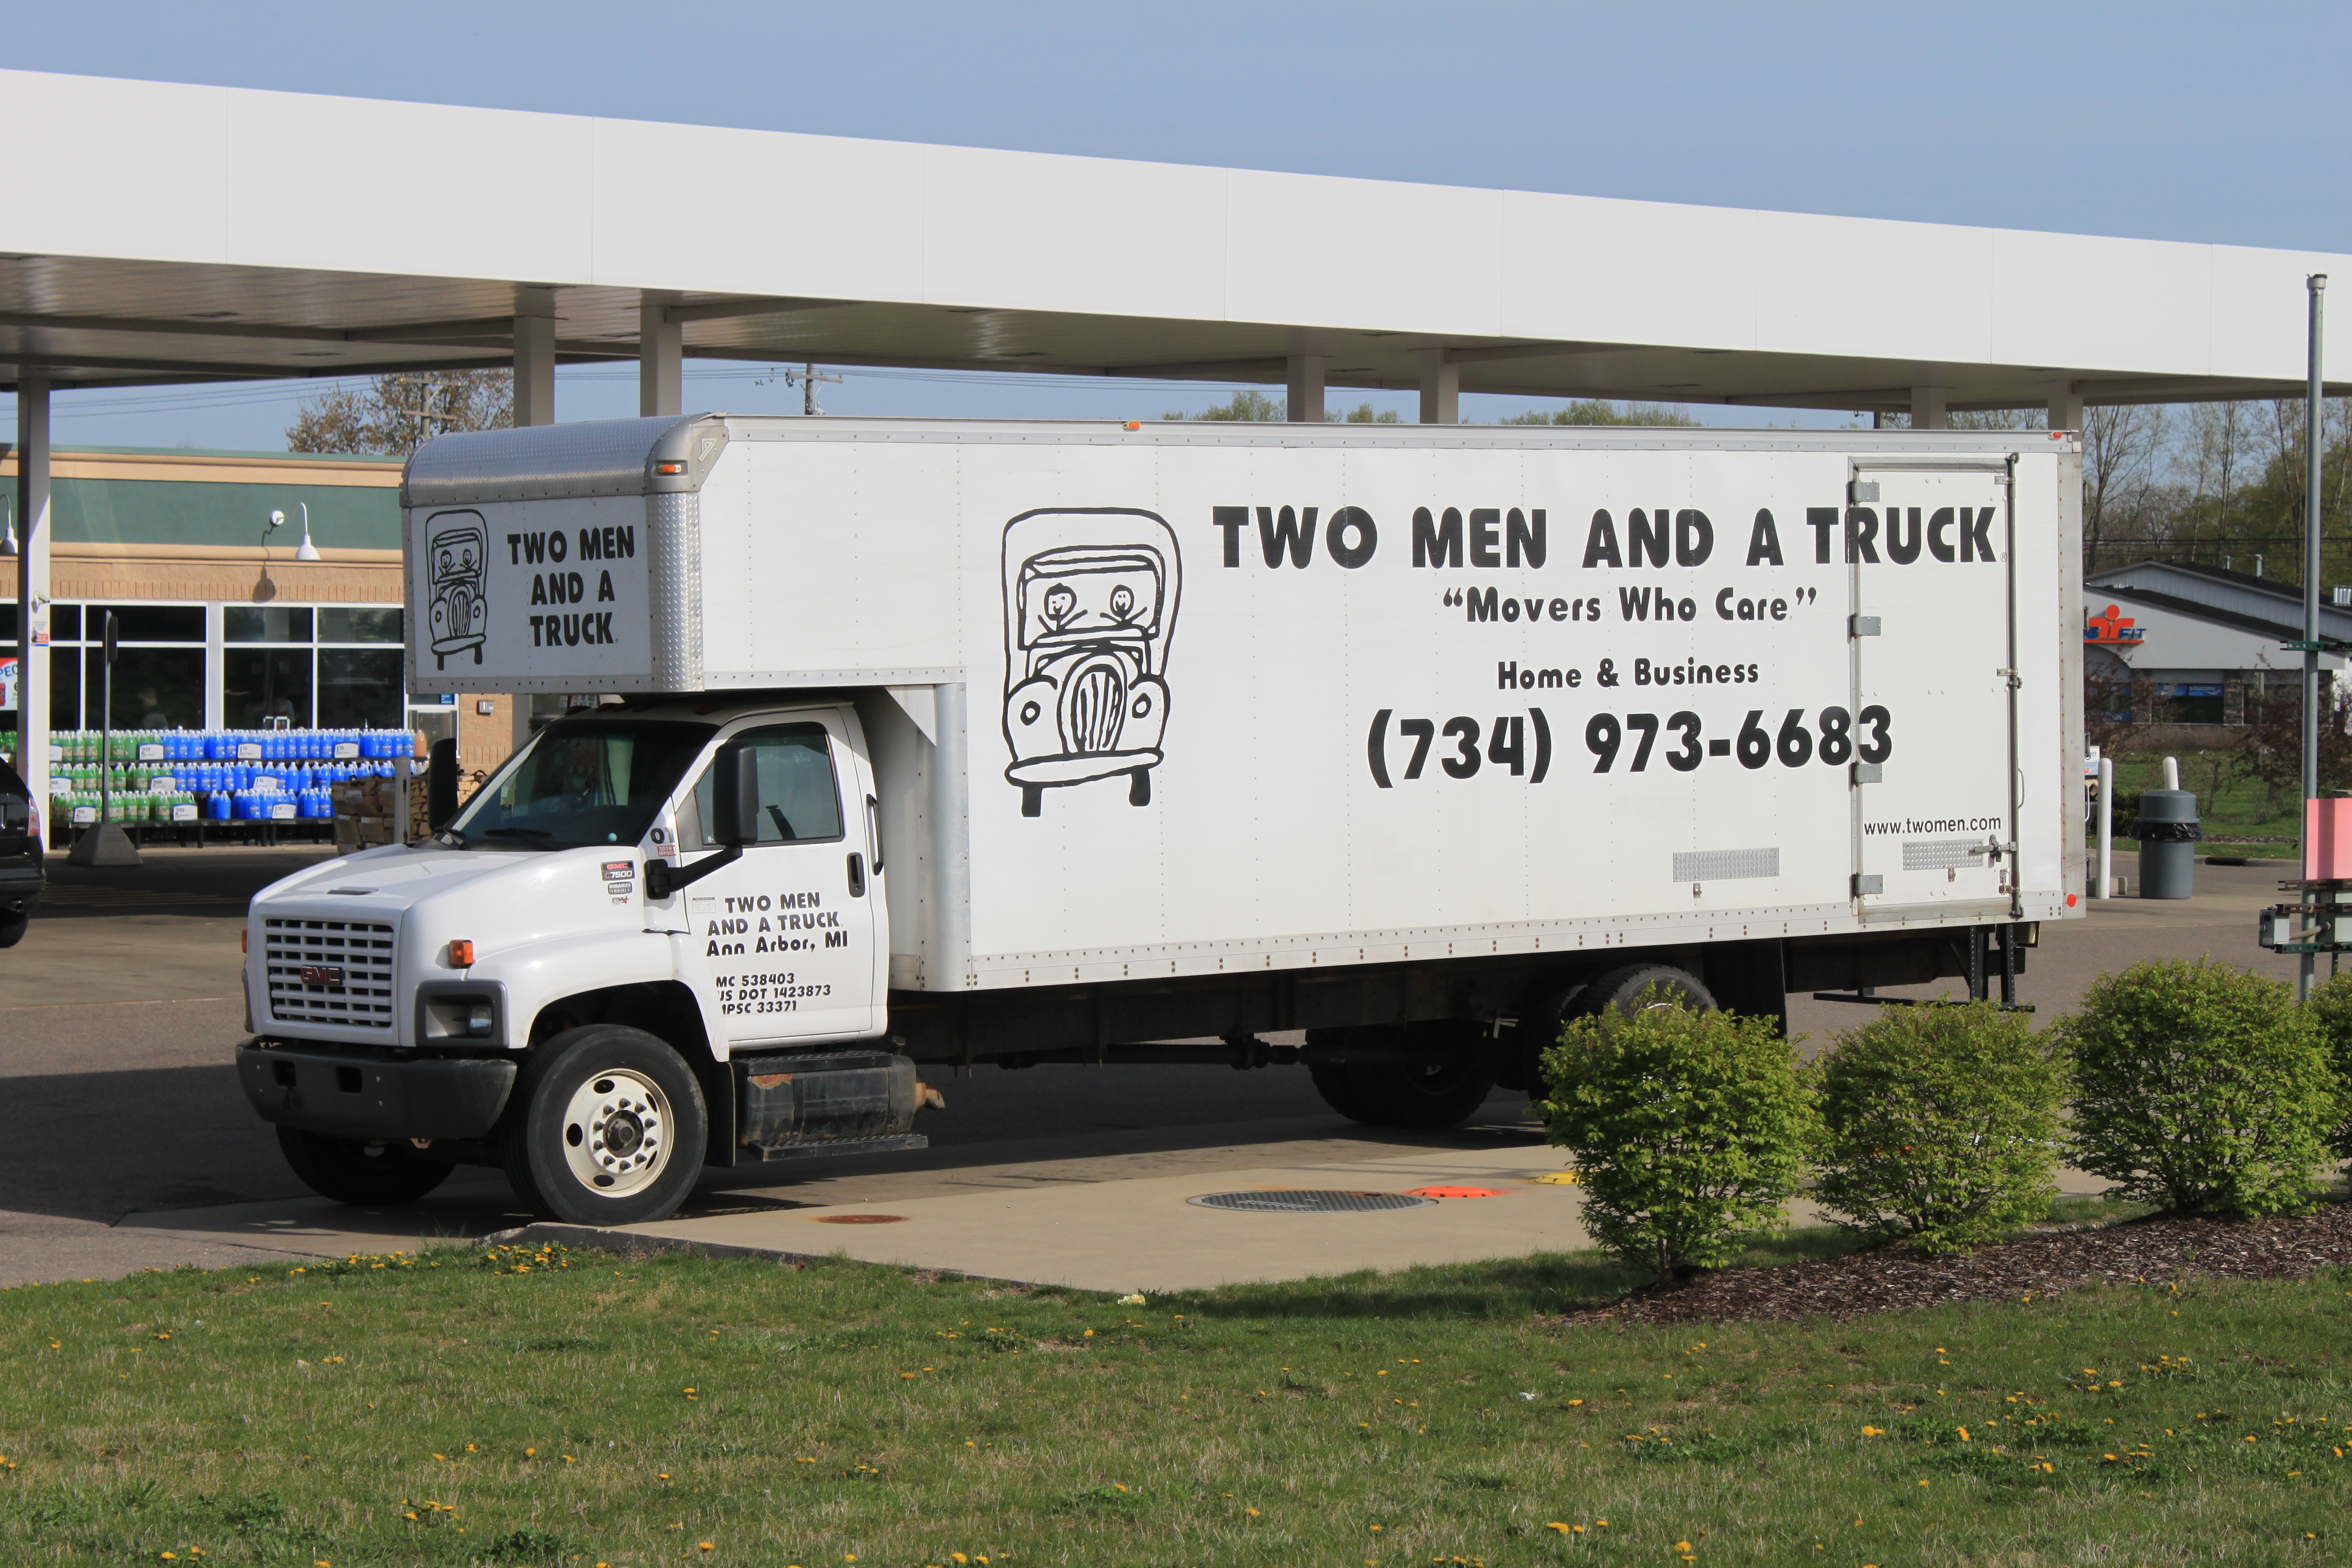 Two men and a truck com